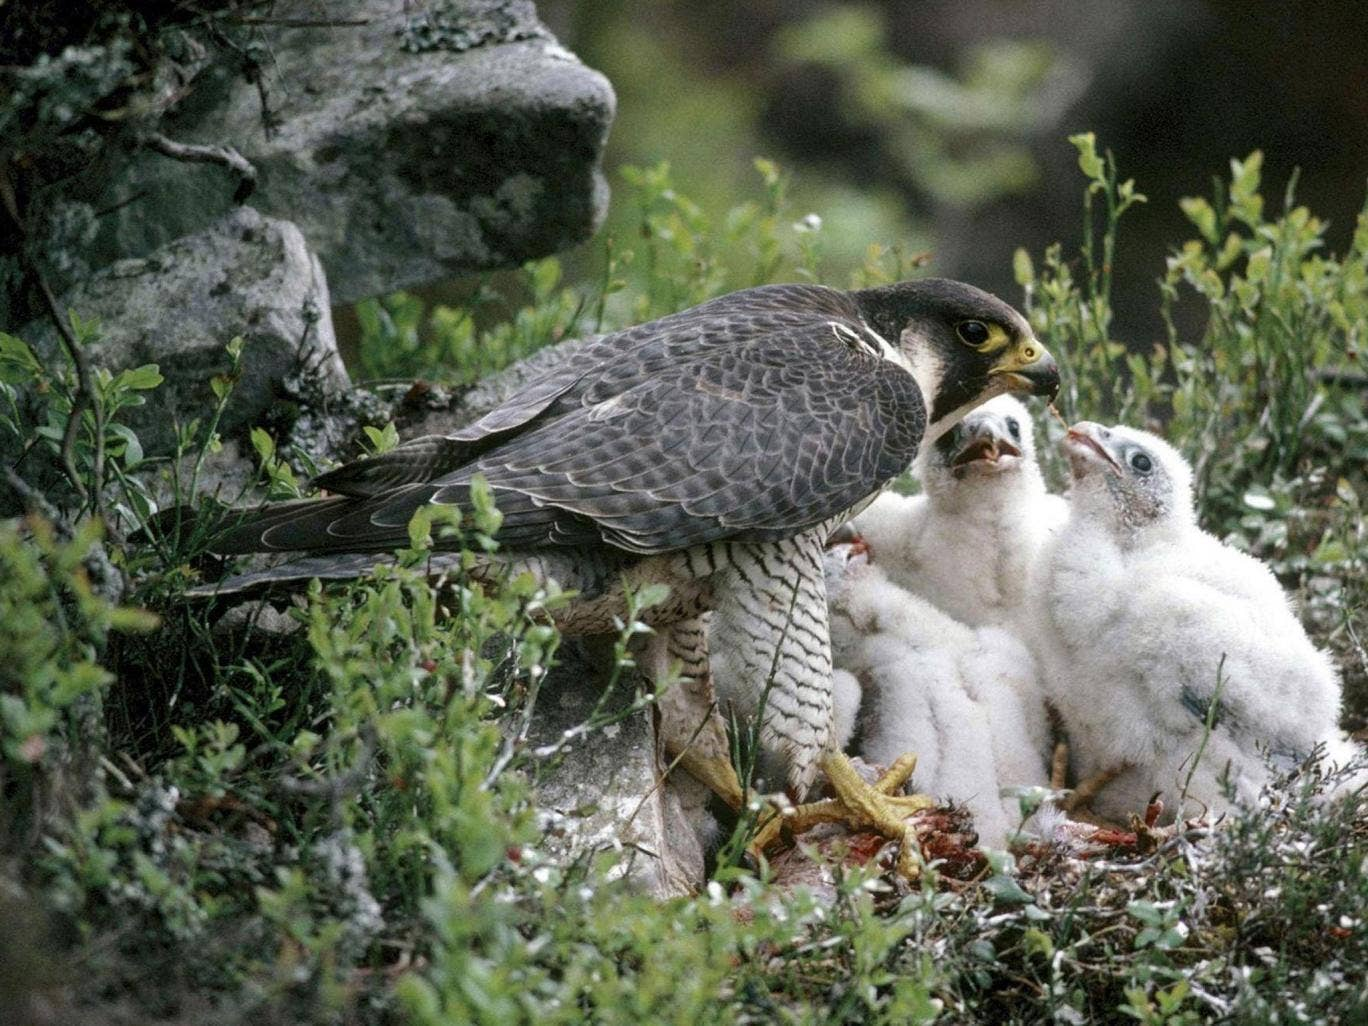 The Forest of Bowland, taking up much of Lancashire, has been a focus of peregrine falcon conservation efforts